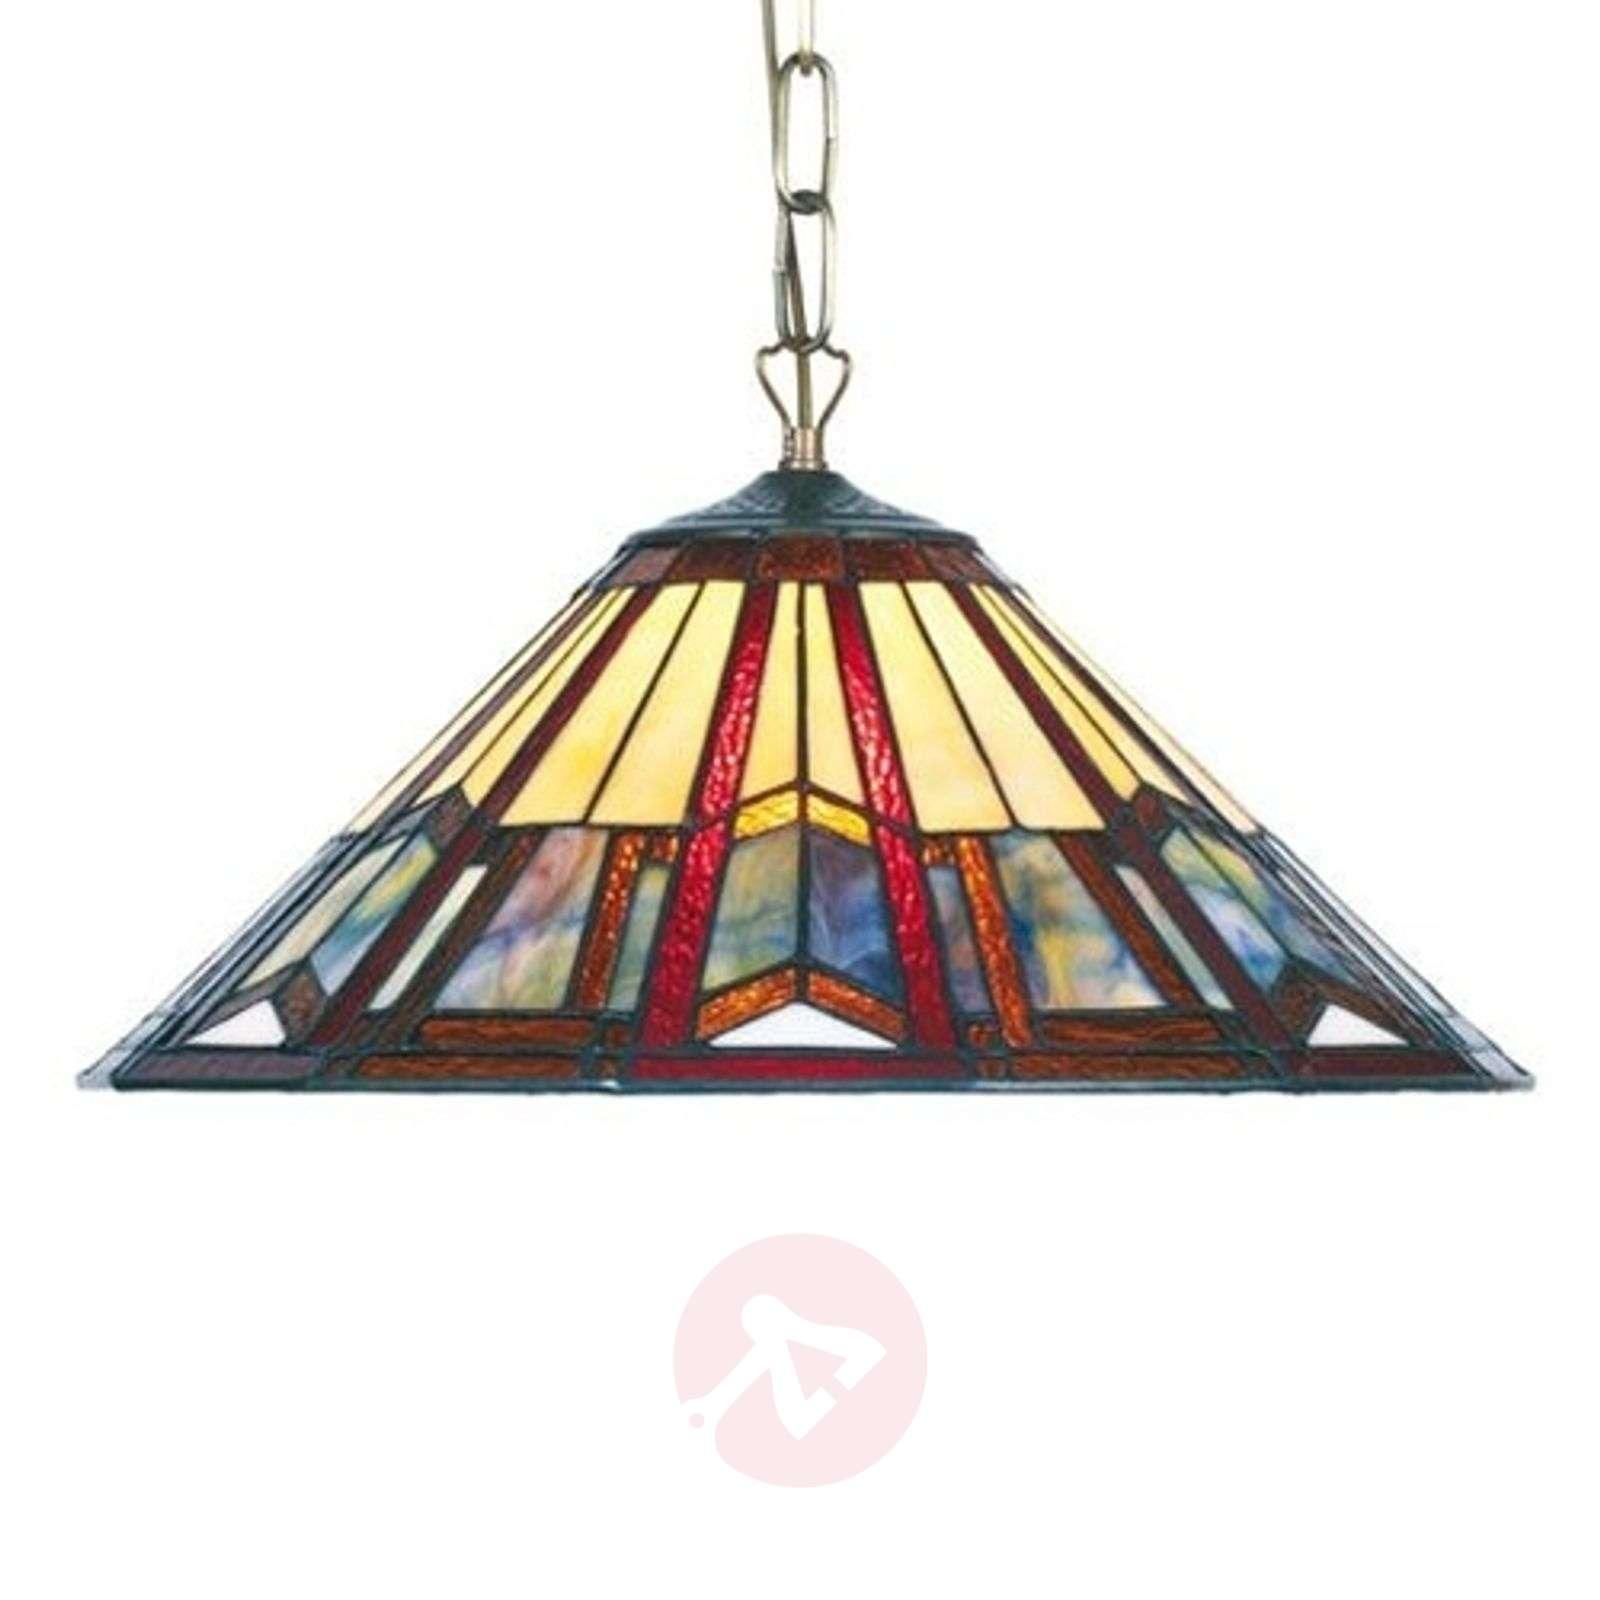 Hanglamp LILLIE in Tiffany-stijl-1032129X-01